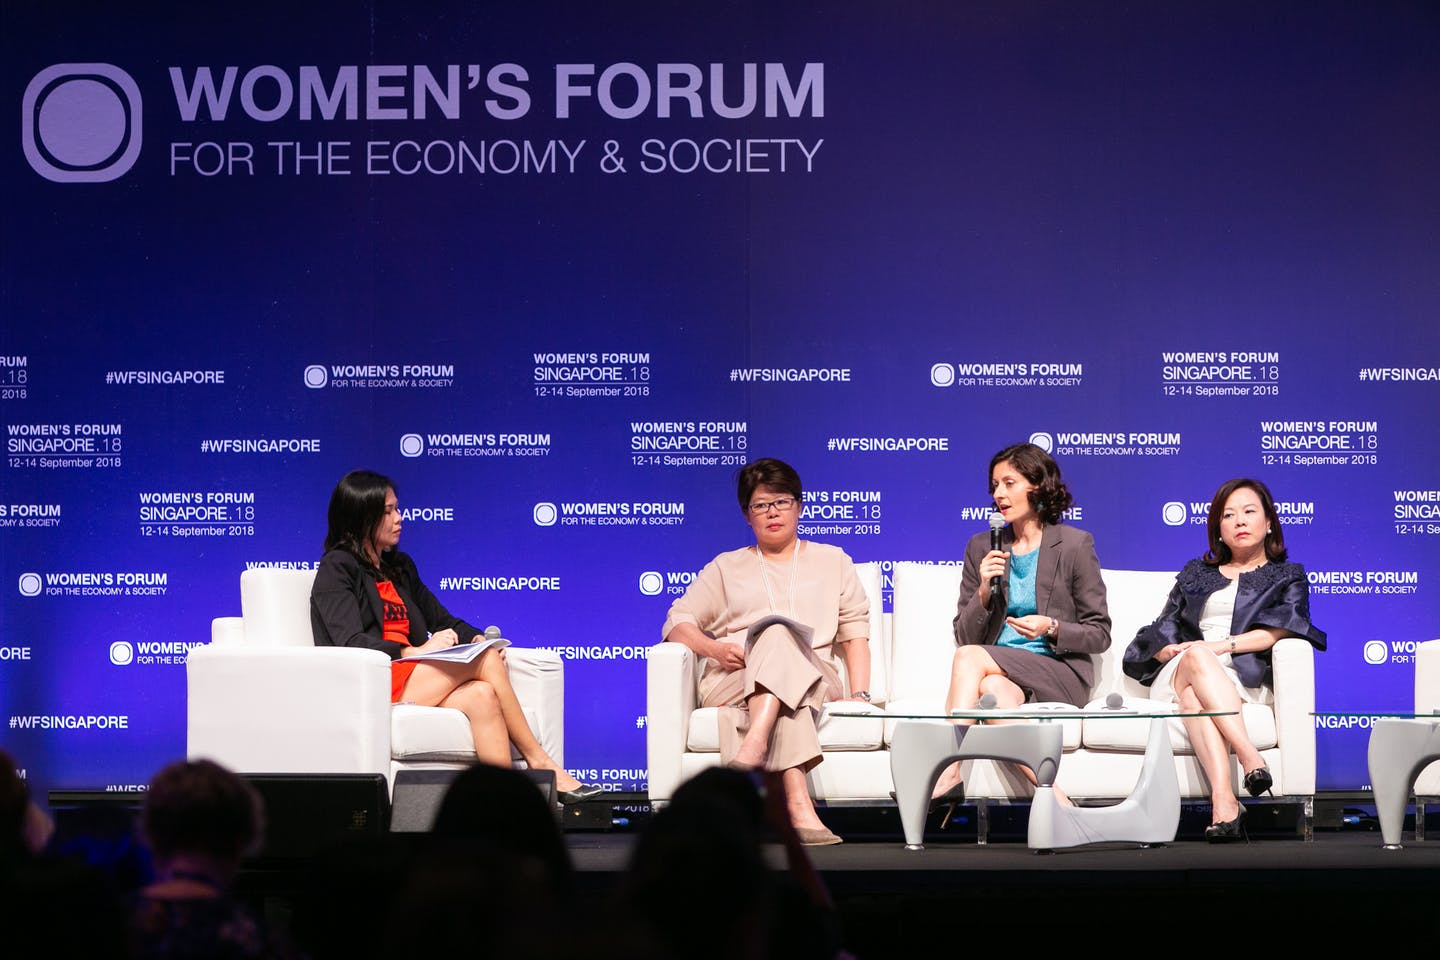 Experts from industry and civil society discuss the role of women in advancing the climate agenda in a panel titled 'Tackling Climate Change: Designing ASEAN's sustainable future.' Image: Women's Forum / Sipa Press